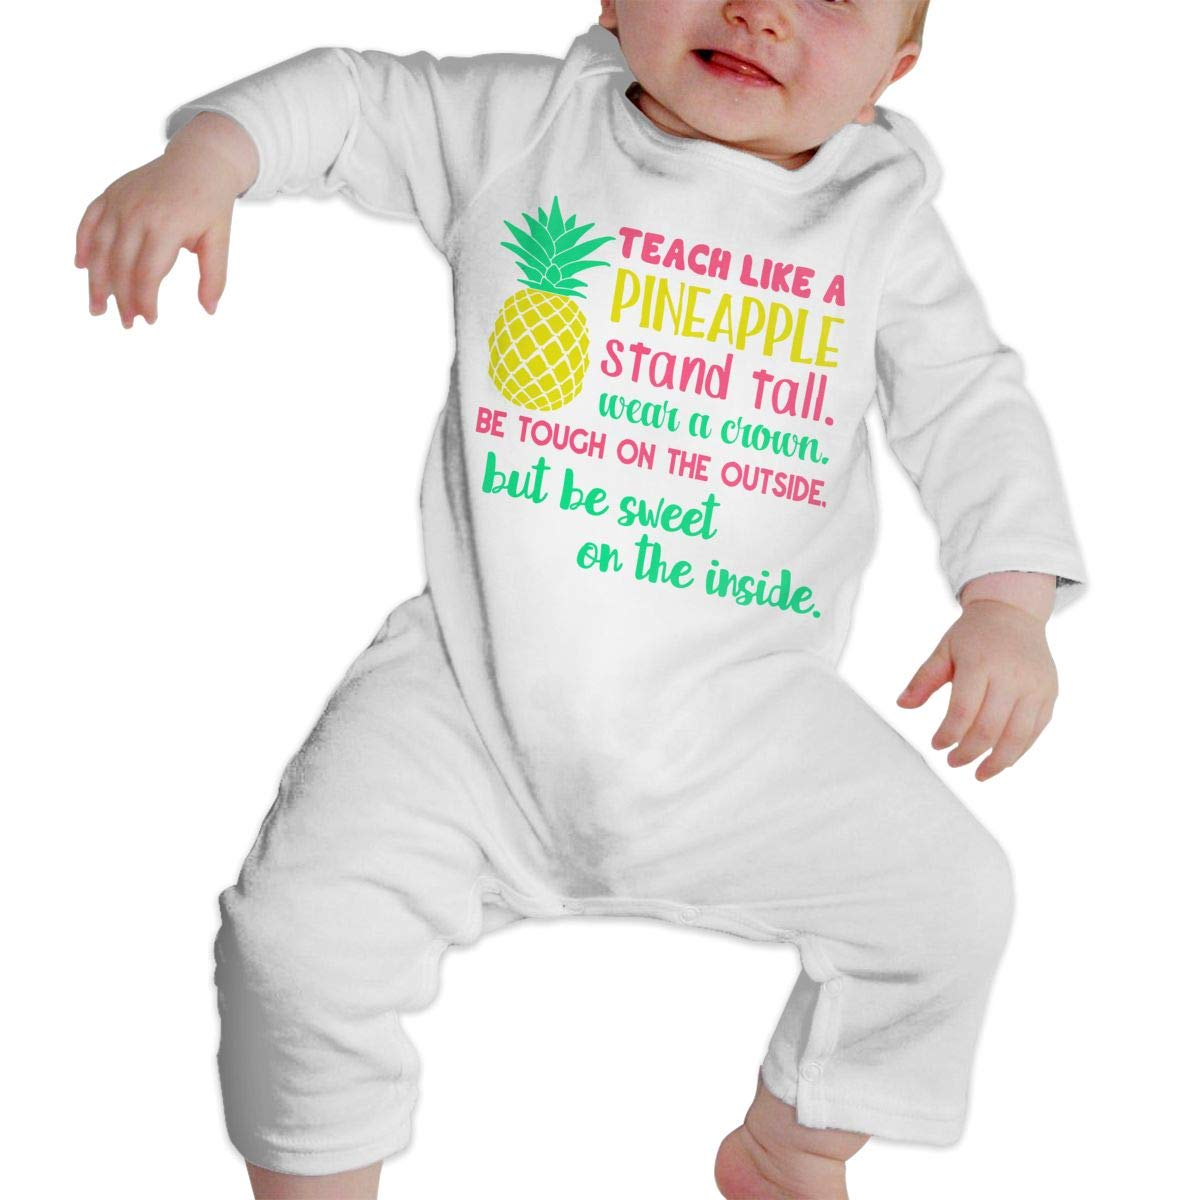 Teach Like A Pineapple Newborn Infant Baby Girls Essential Basic Bodysuits Coverall Jumpsuit